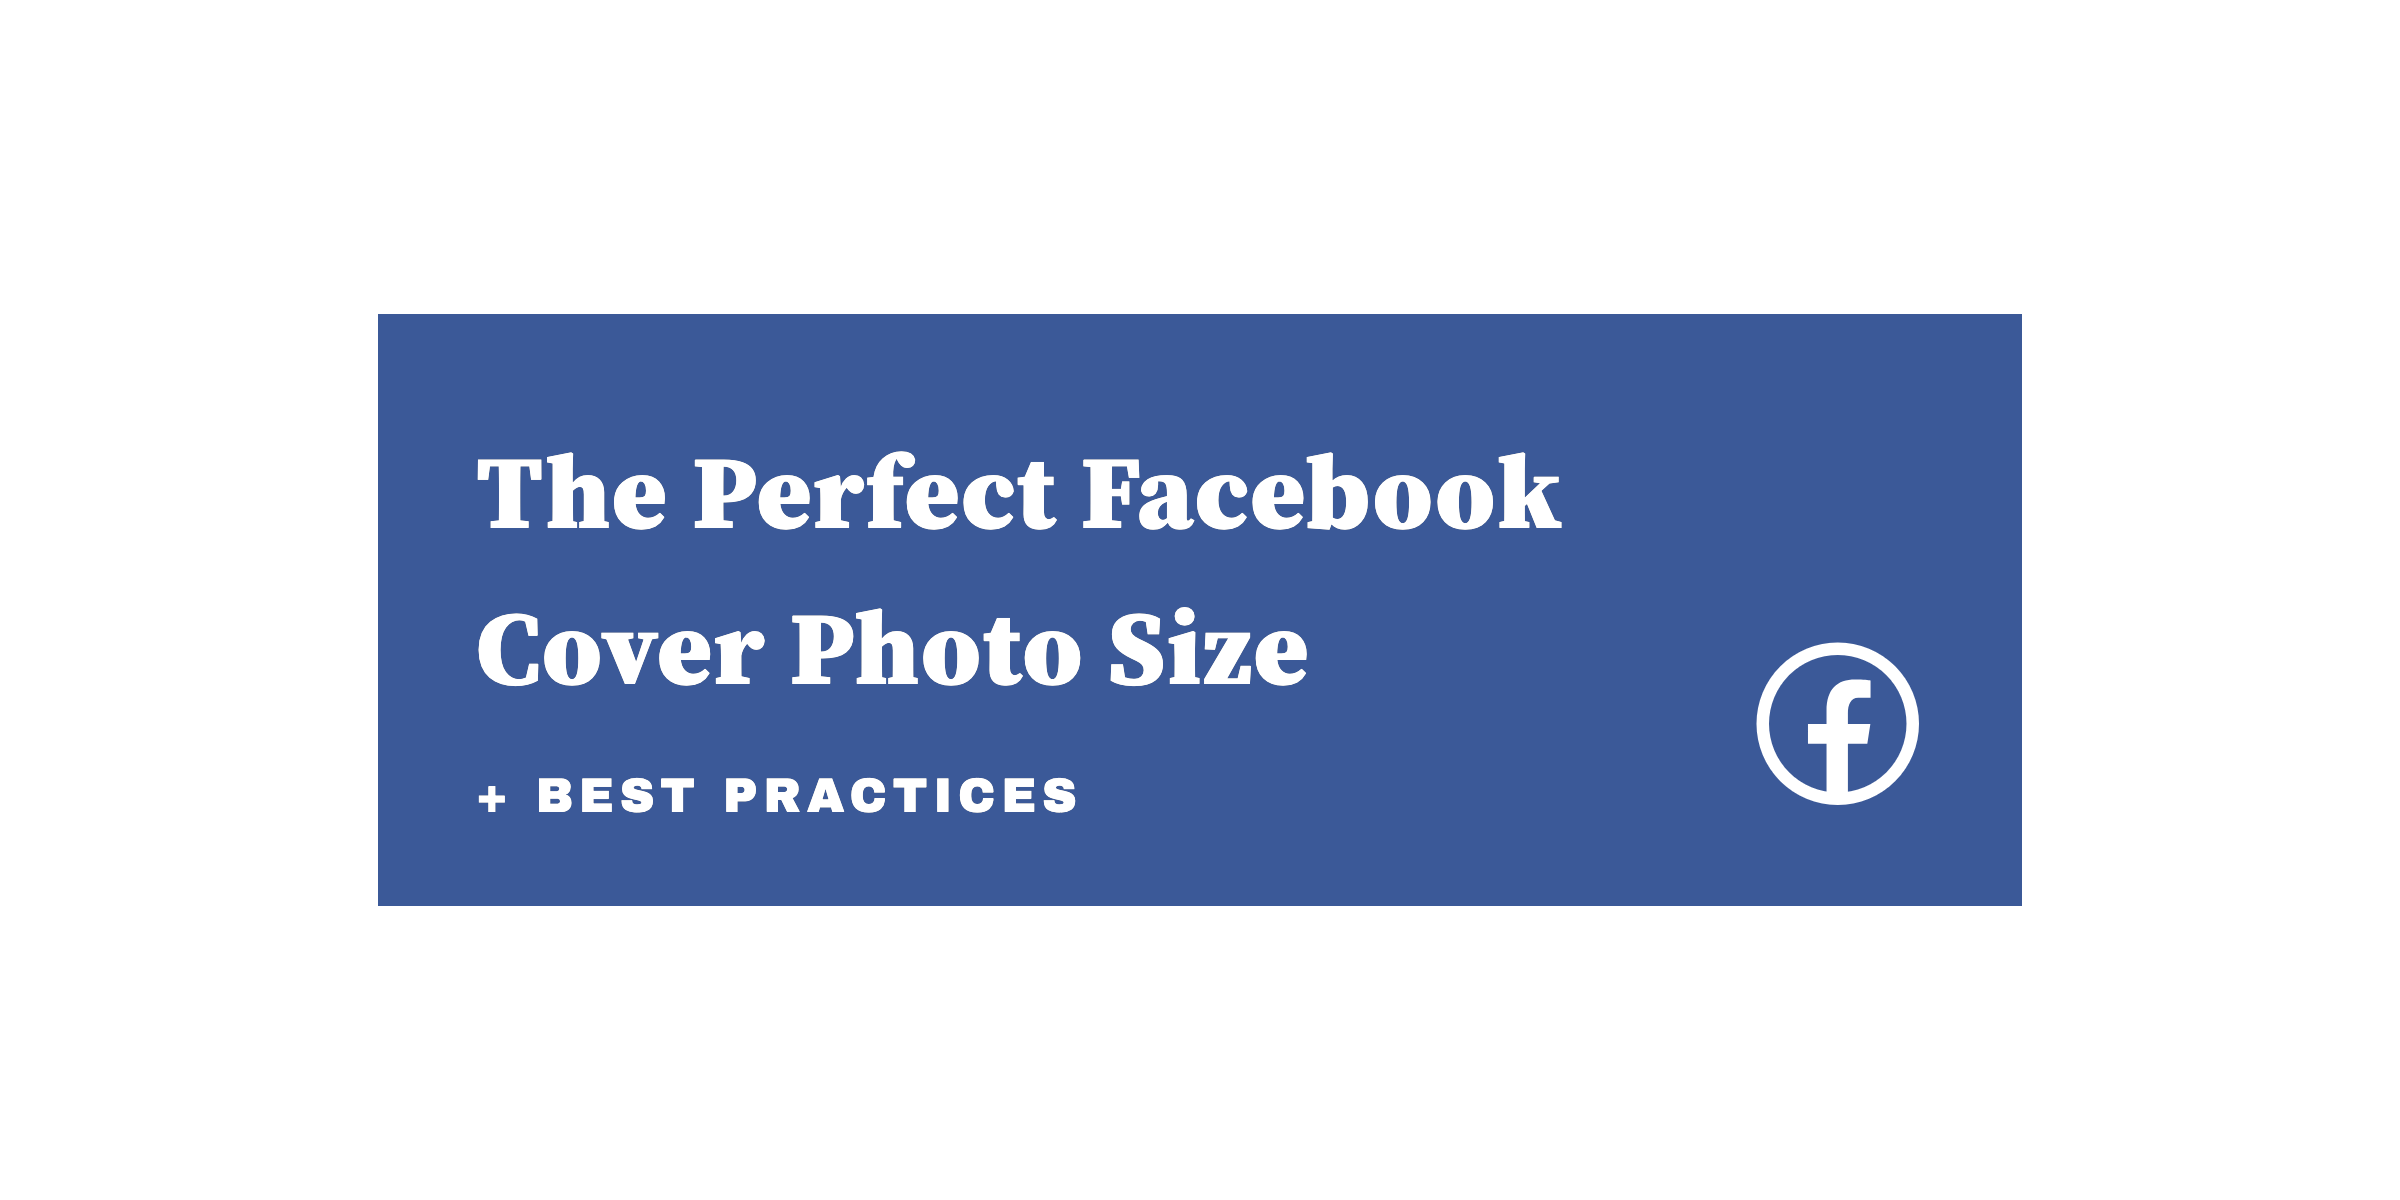 The Perfect Facebook Cover Photo Size Best Practices 2019 Update